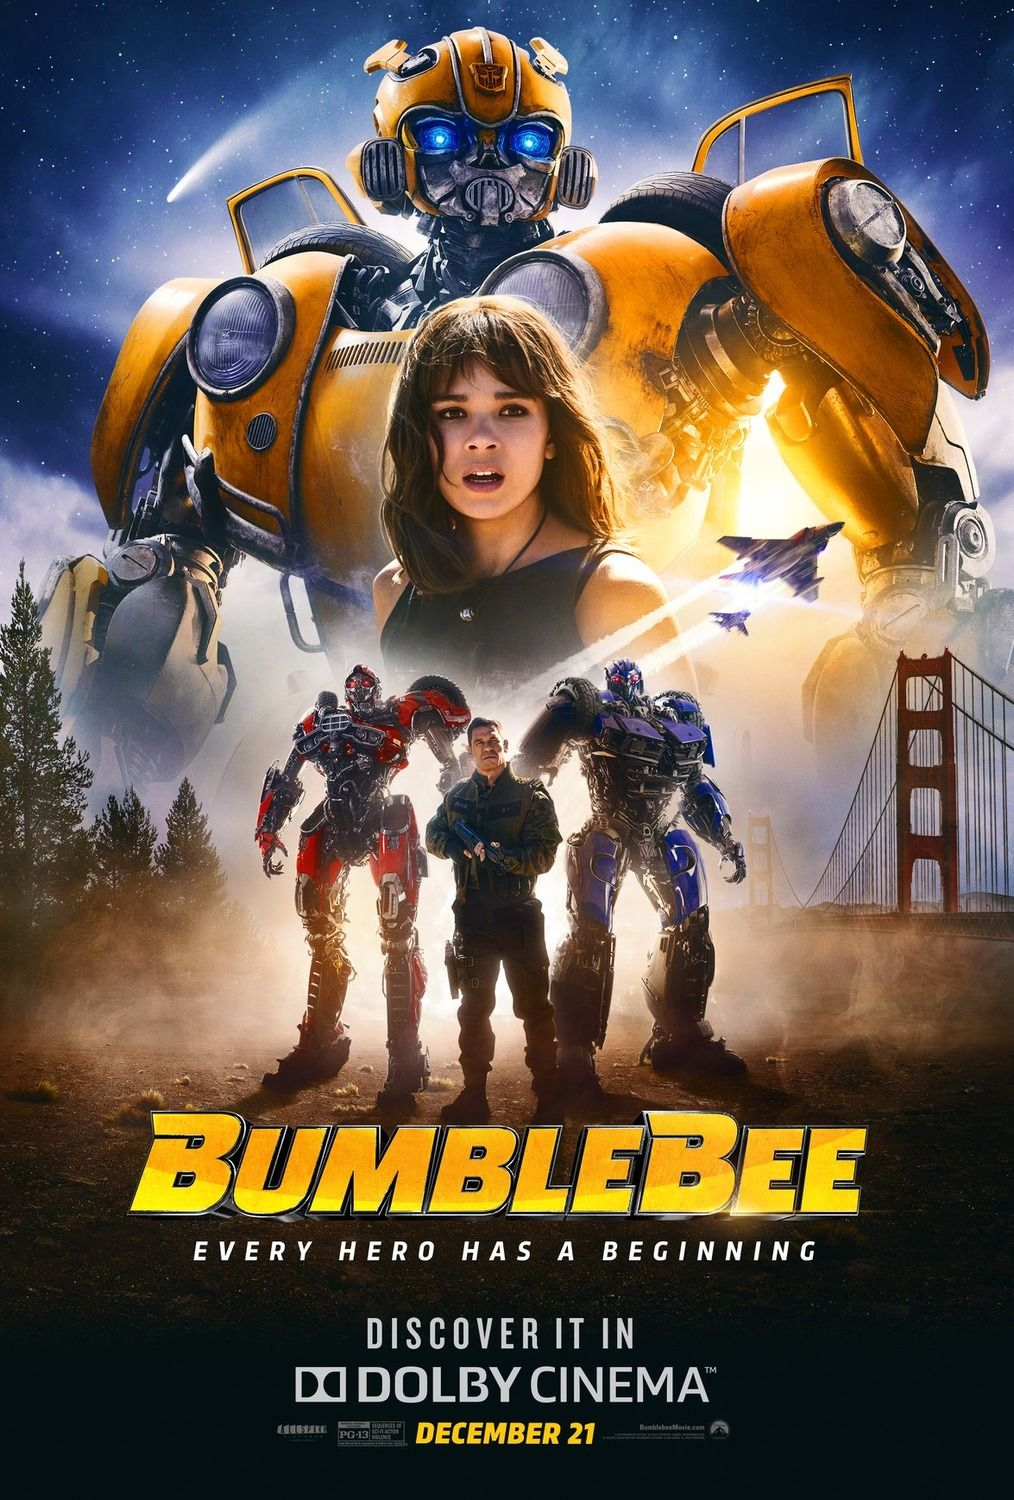 Bumblebee (Dolby Cinema) | party in 2019 | Transformers